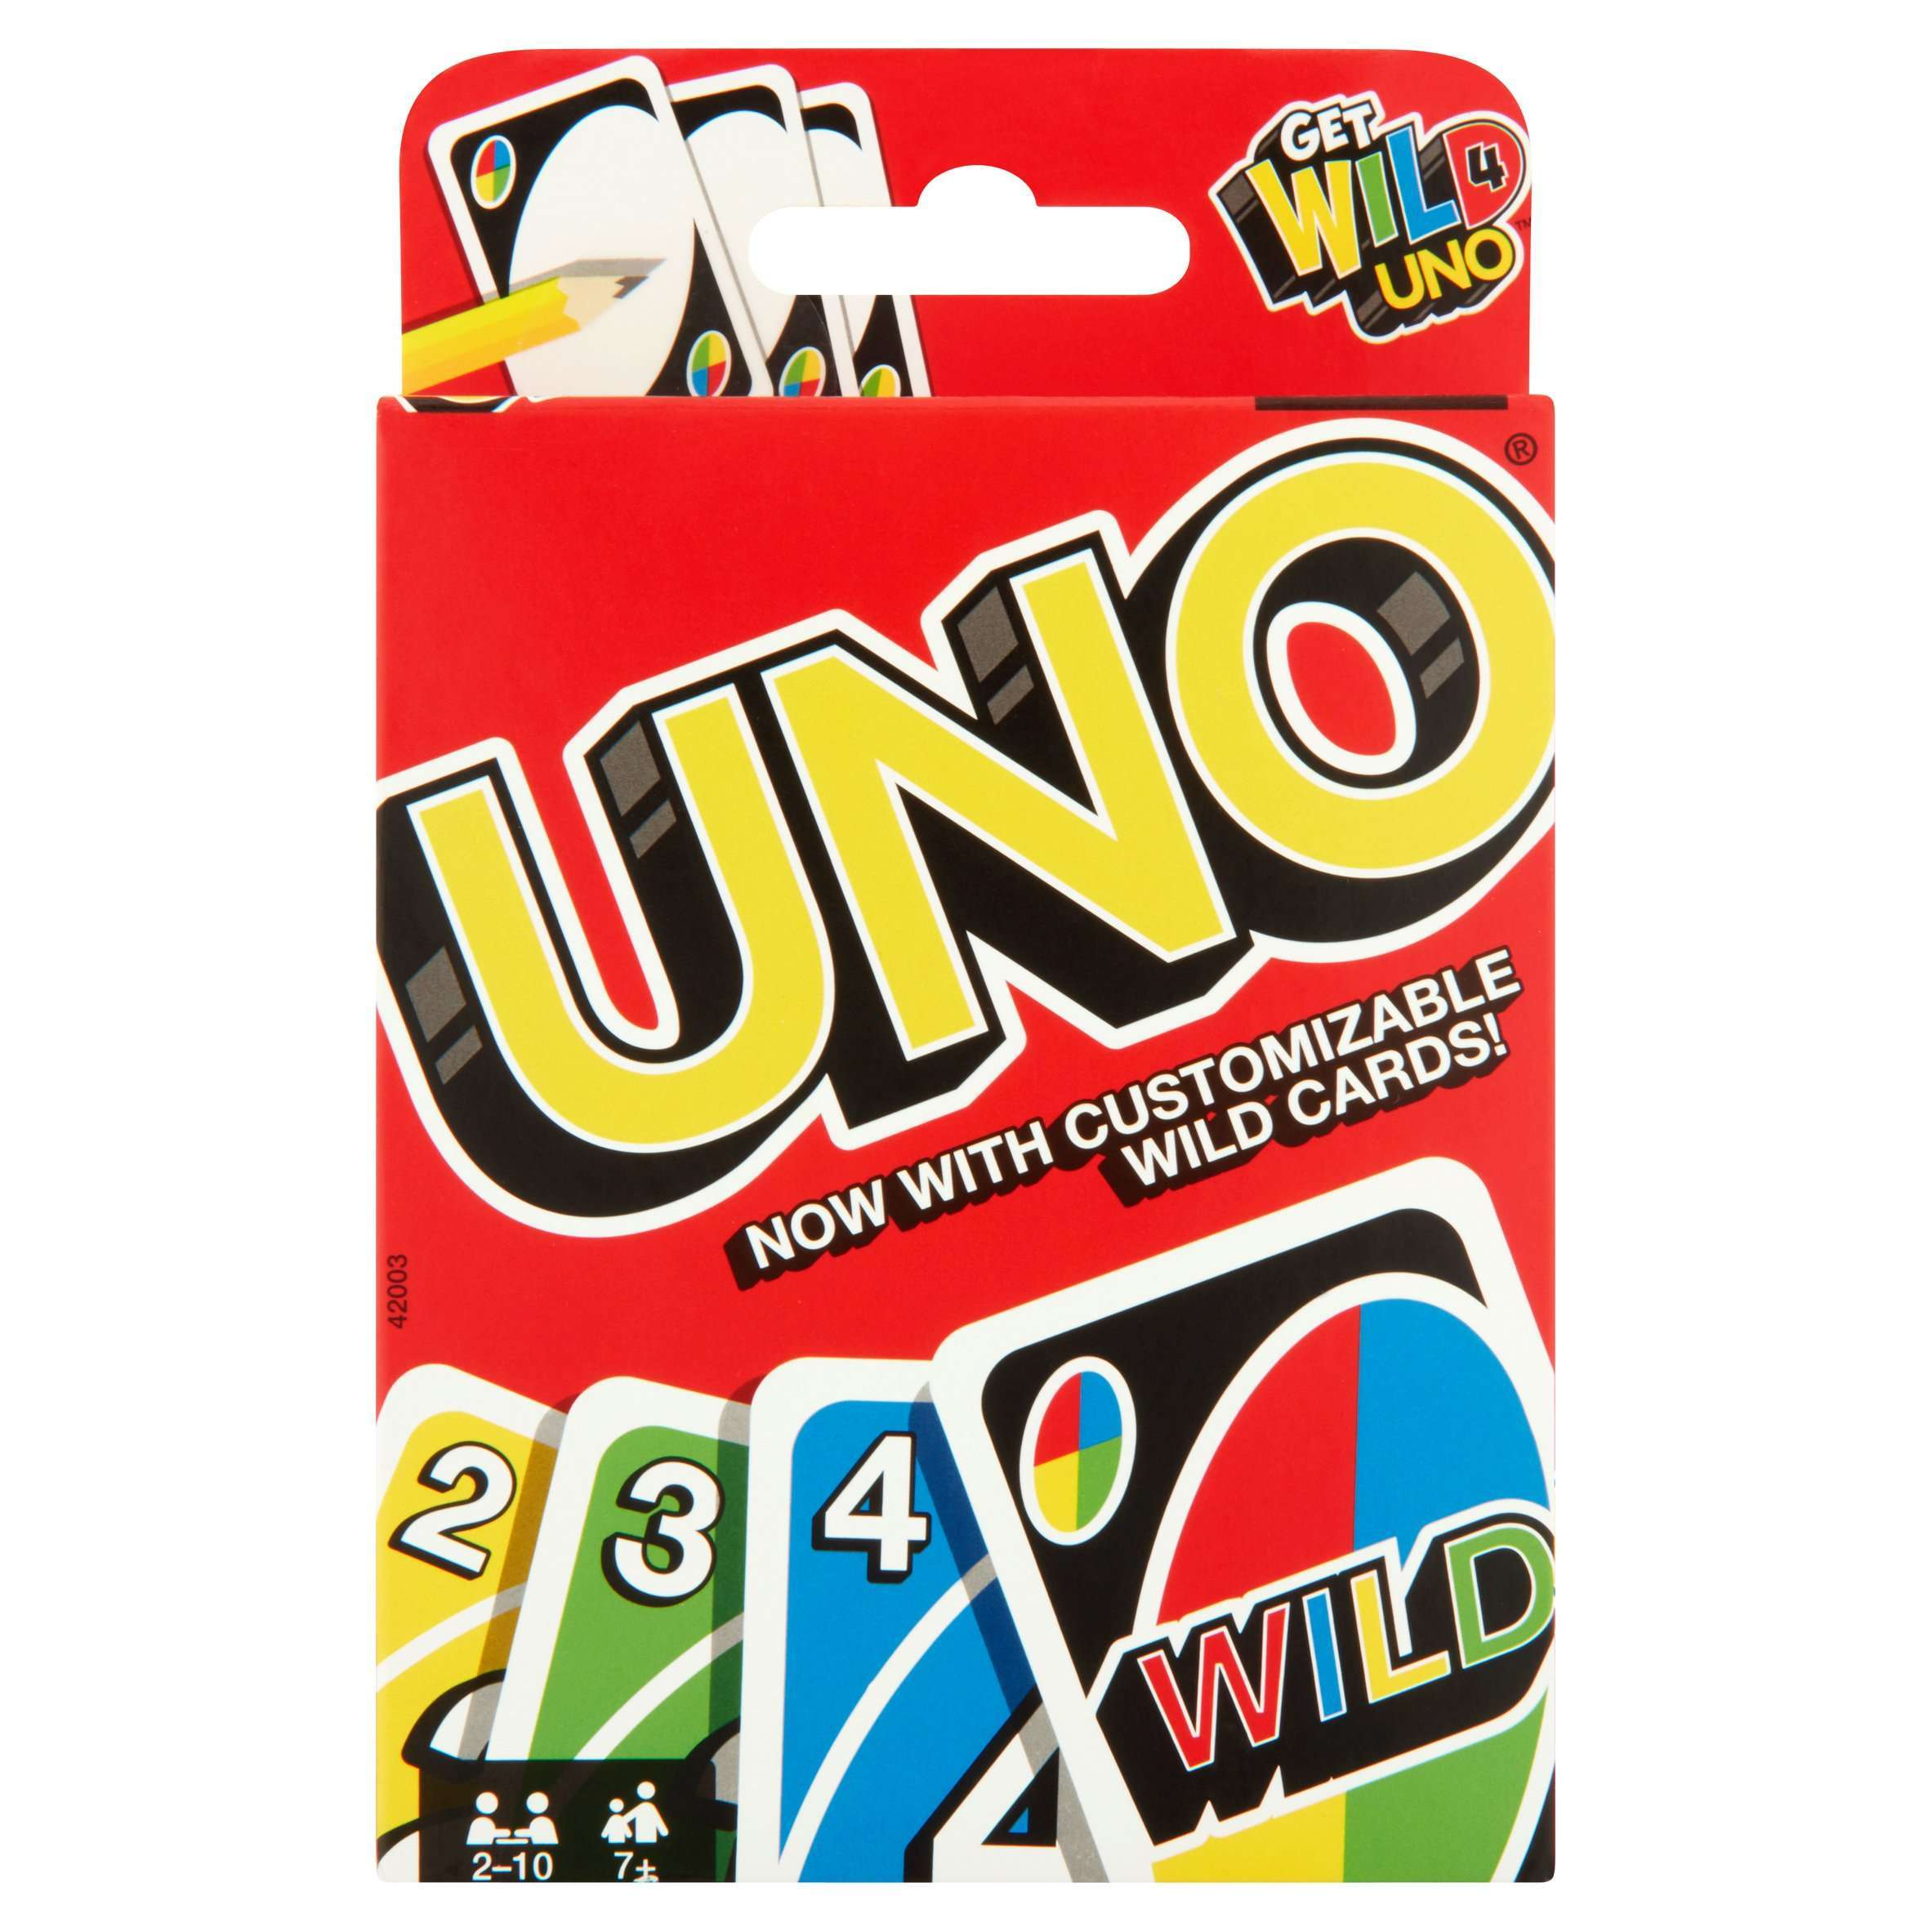 UNO Card Game, Color and Number Matching for 2 to 10 Players Ages 7 Years and Older